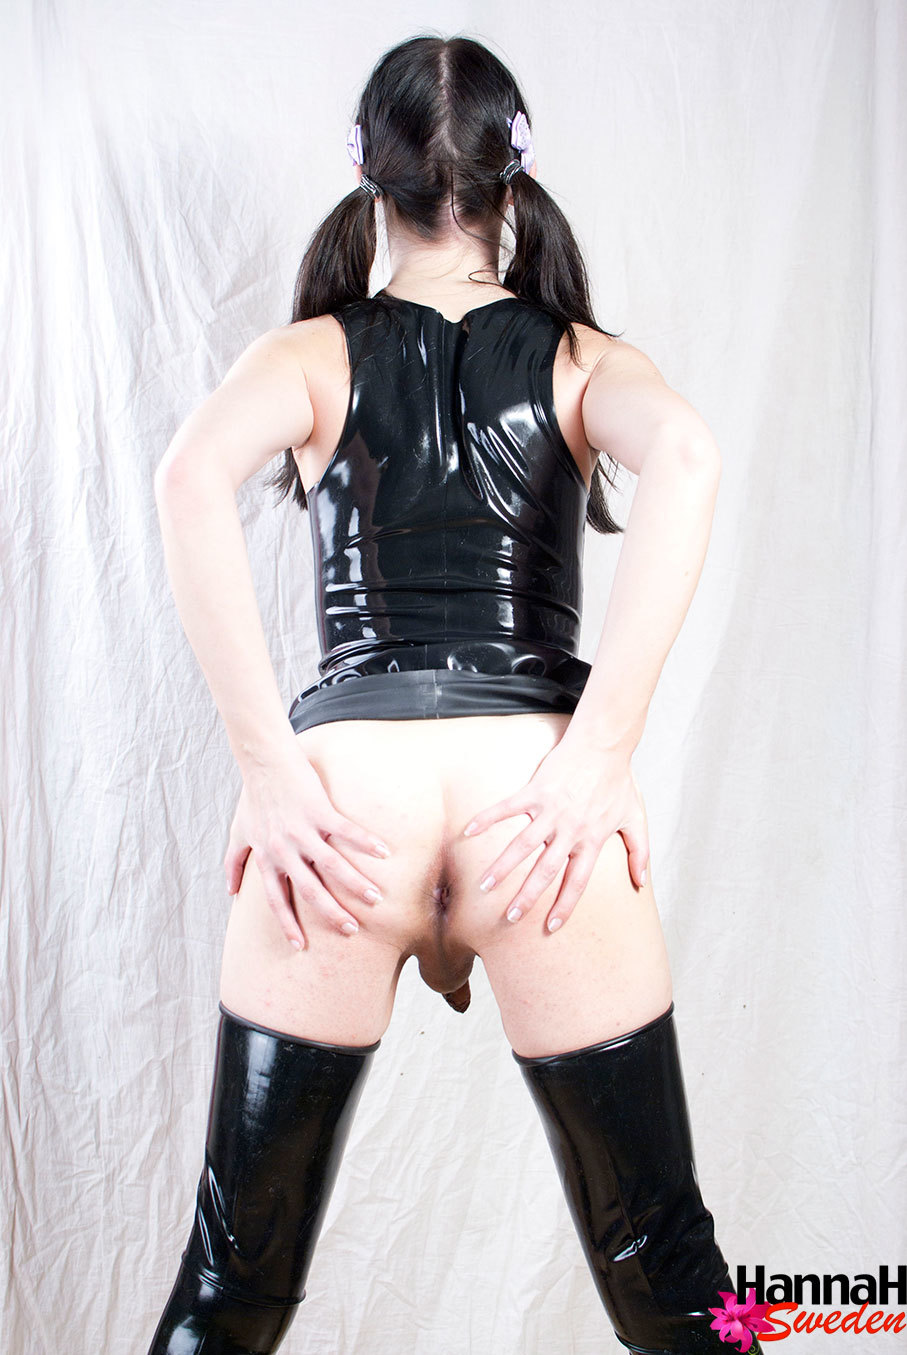 Brunette T-Girl Naked Showing Her Bum Tits And Tool